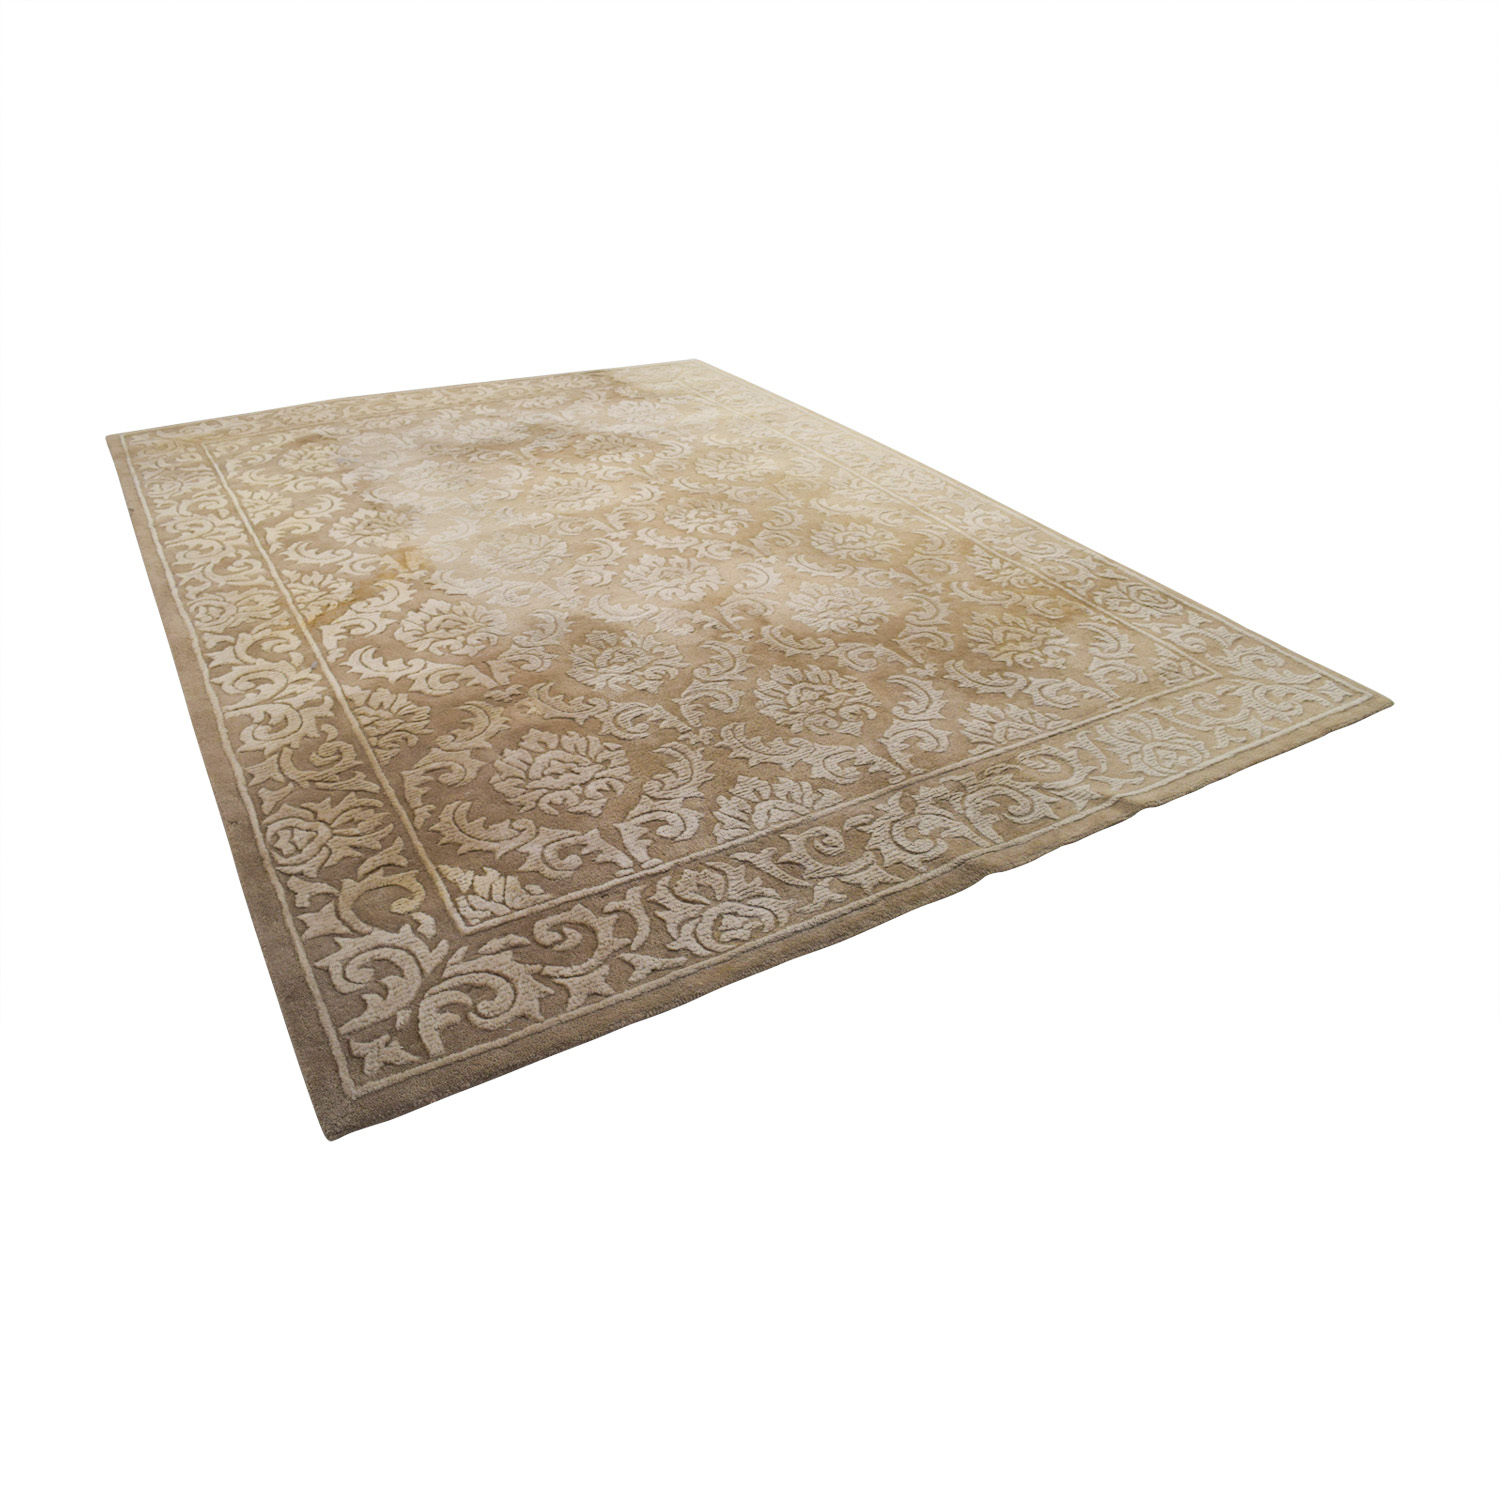 Large Tan Rug coupon